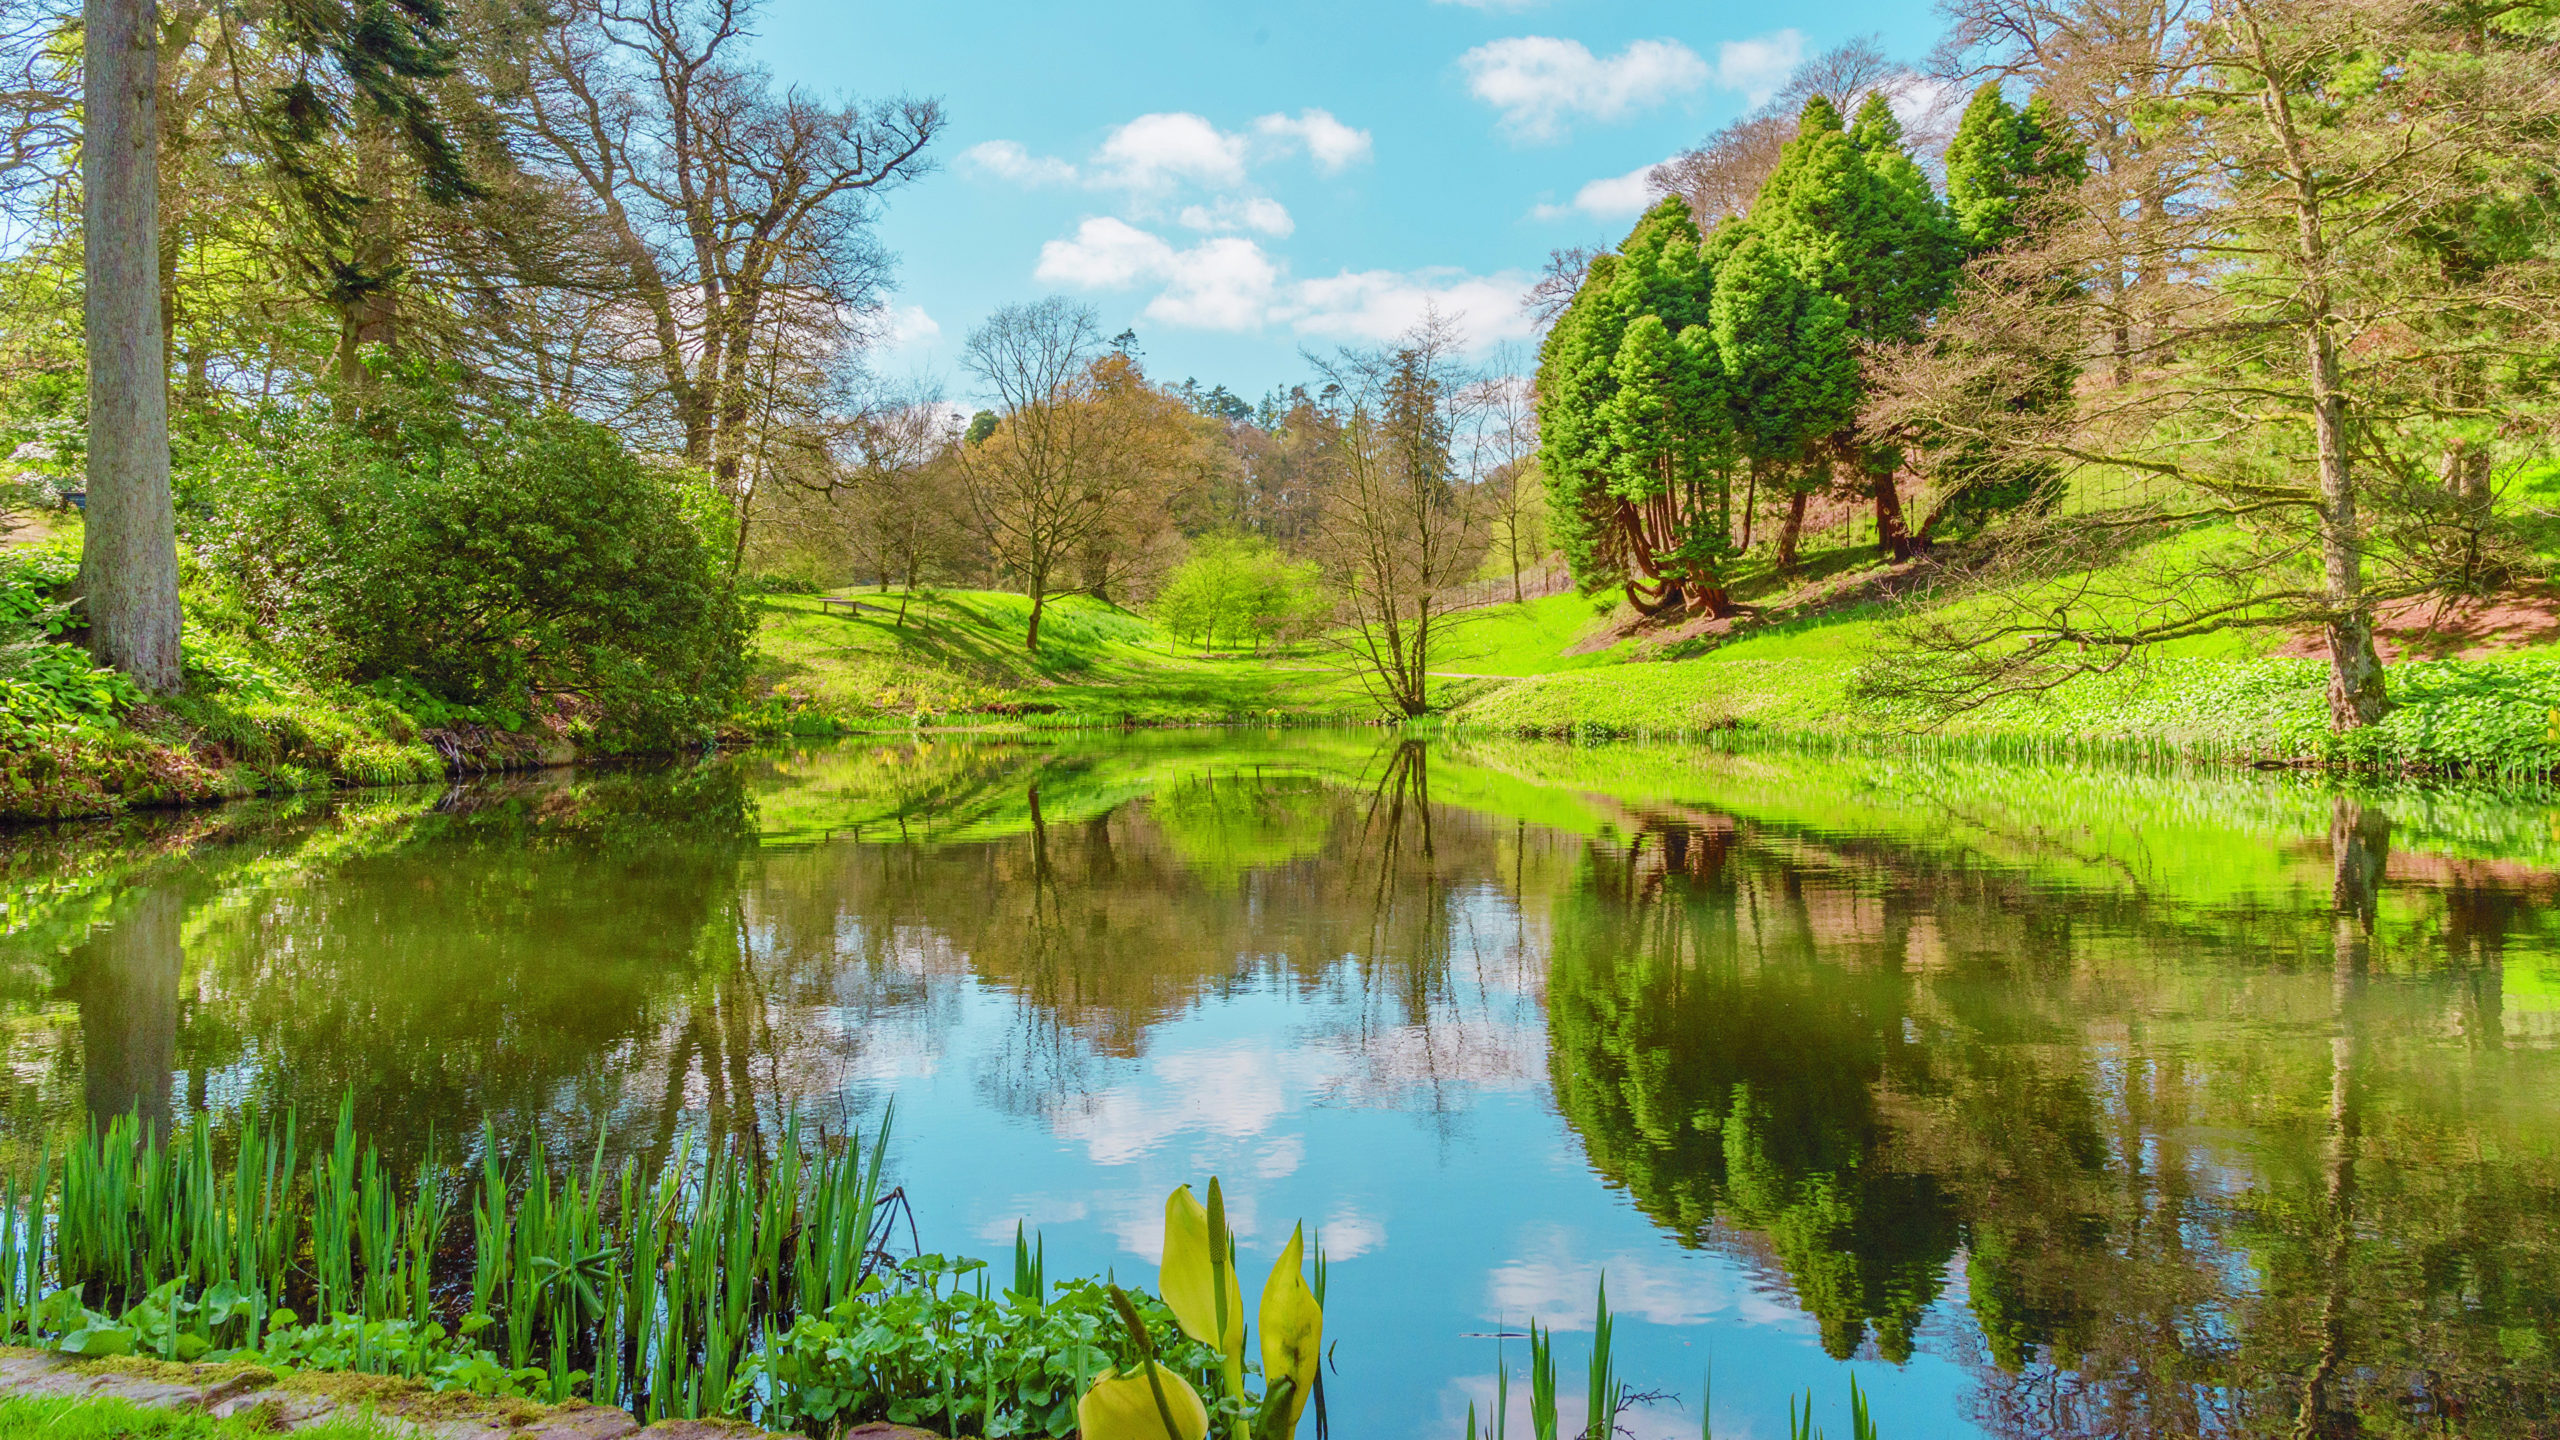 United_Kingdom_Spring_Lake_Scenery_Powys_County_521973_3840x2160